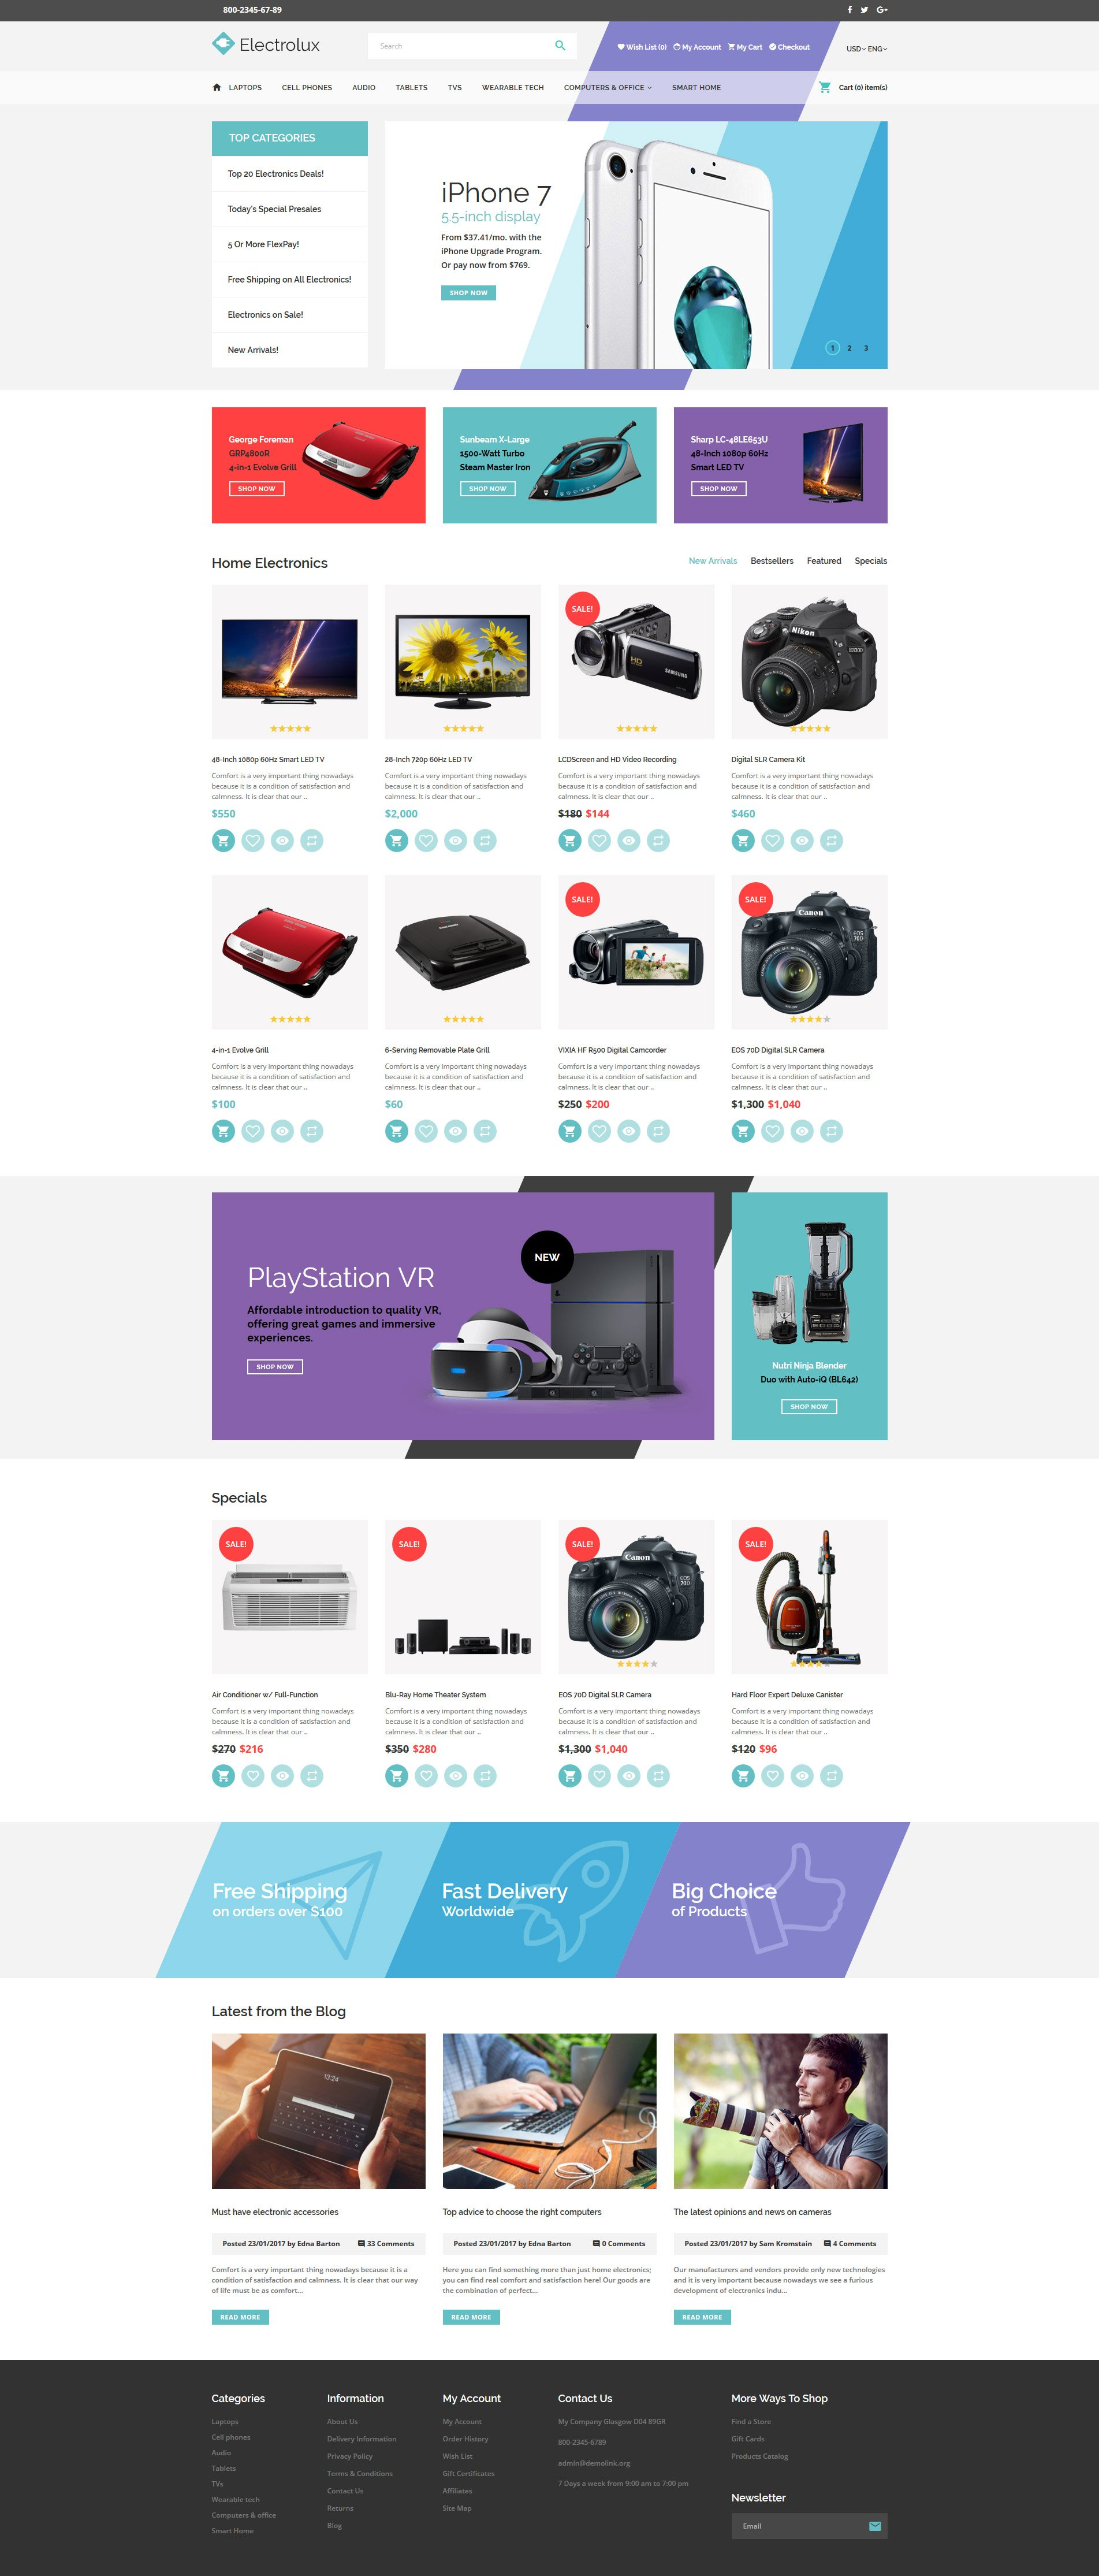 Website Design Template 62224 - electronics online shop delivery computer office staff printer notebook laptop shipment desktop portable scanner camera monitor cable system technology processor installation hardware input device memory server accessory wireless pc connection